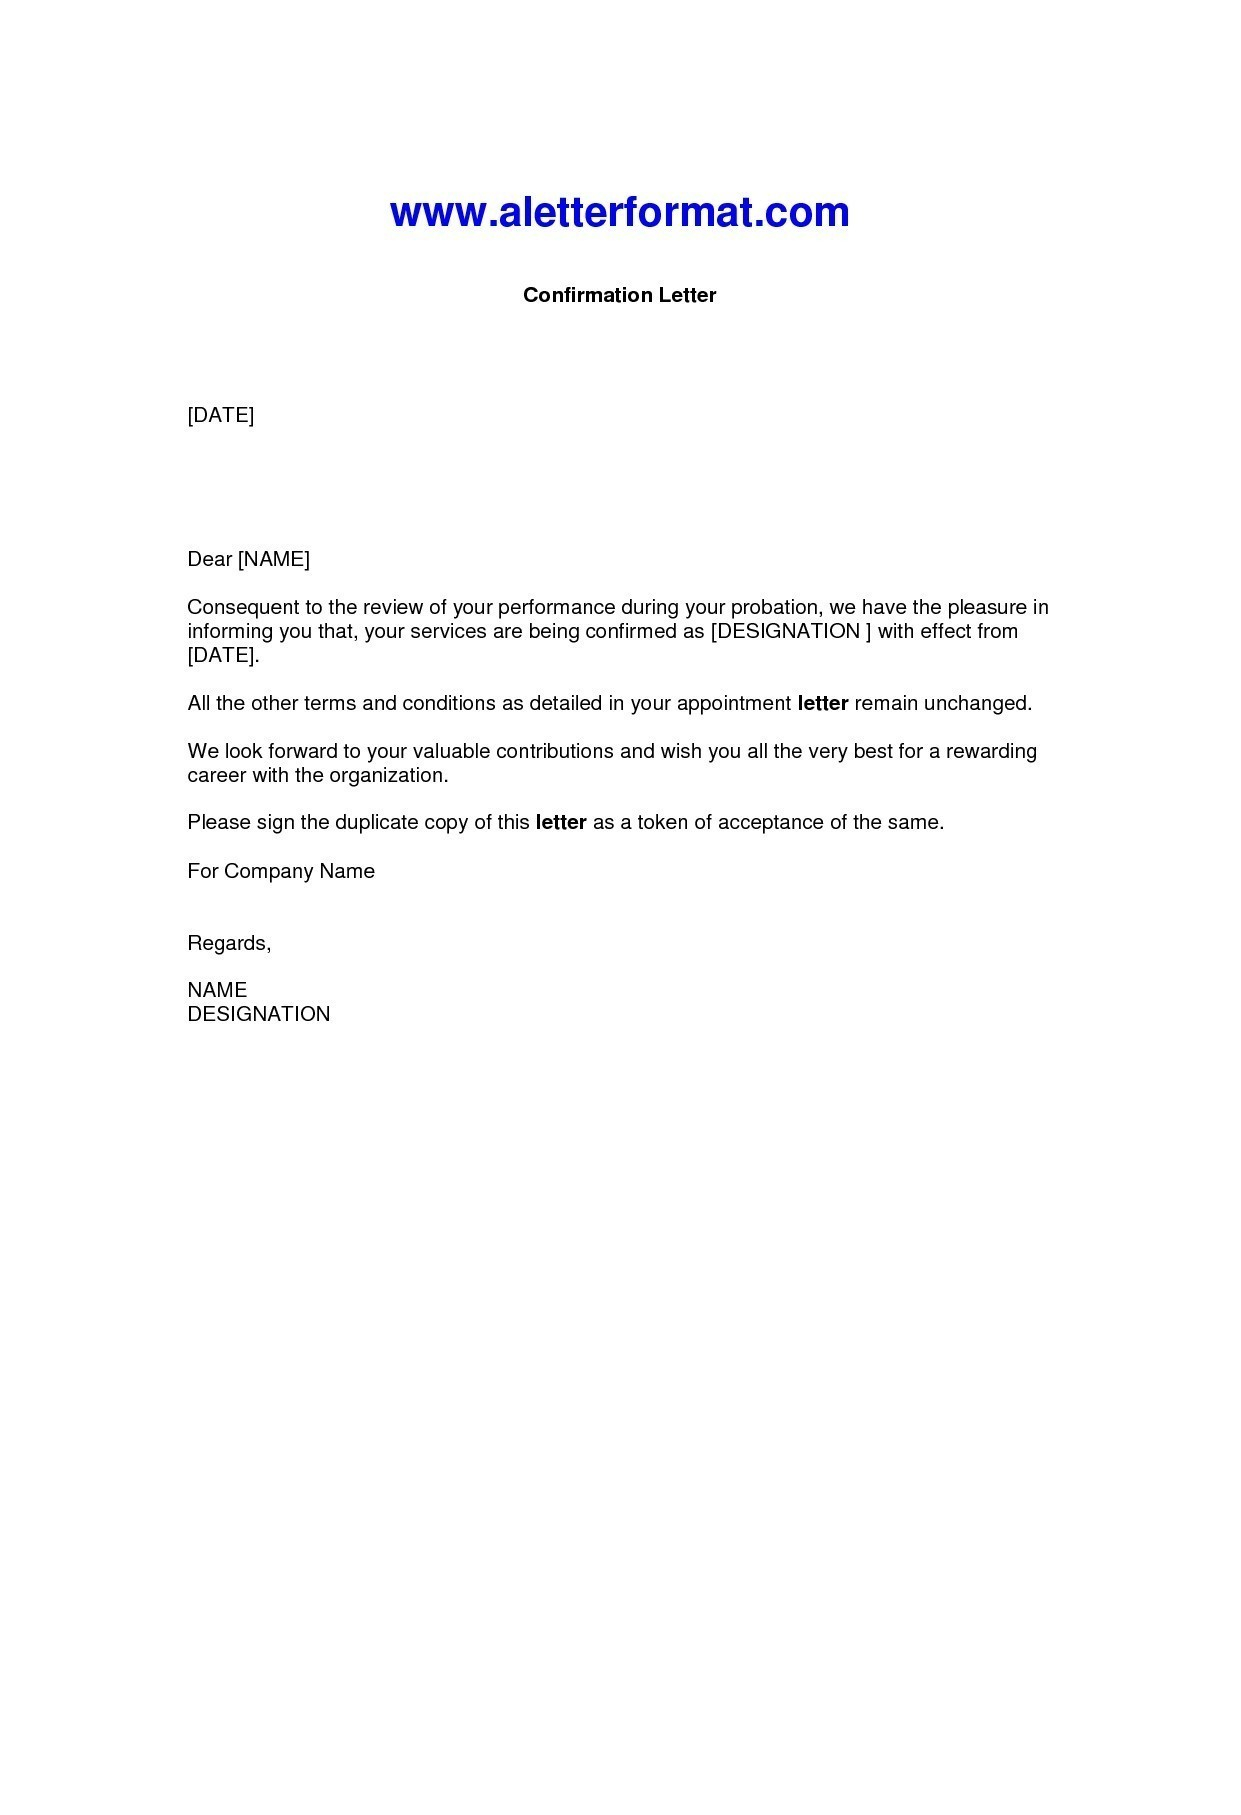 Confirmation Letter Template - Valid Request for A Job Confirmation Letter Sample